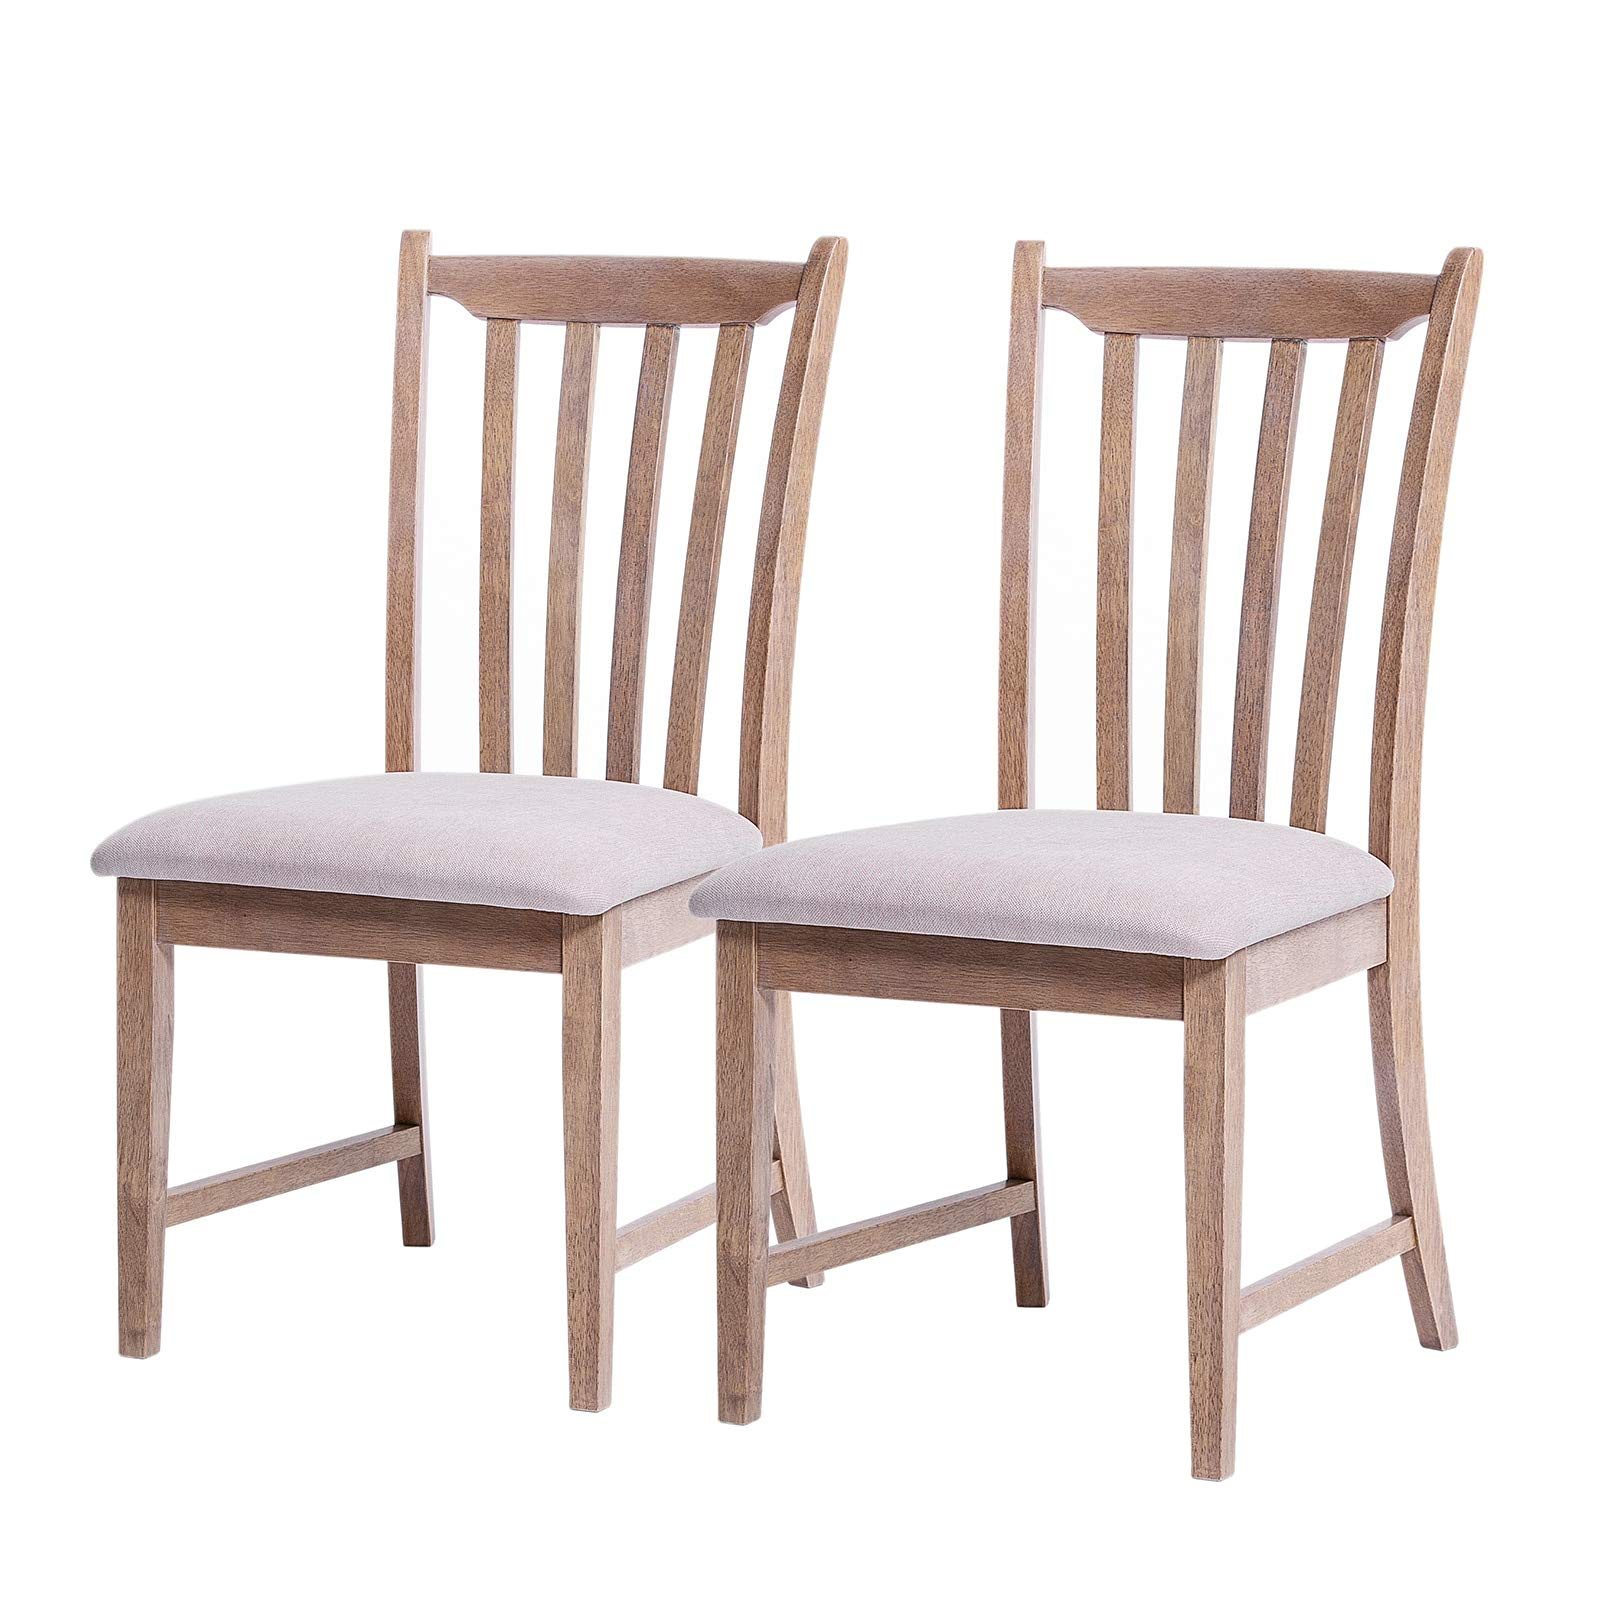 Furgle Set Of 2 Dining Side Chair Oak Wood Modern Kitchen Dining Chair With Vertical Slatted Back And Upholstered Seat Covered Microfiber Cushion Intended For Bob Stripe Upholstered Dining Chairs (Set Of 2) (View 5 of 15)